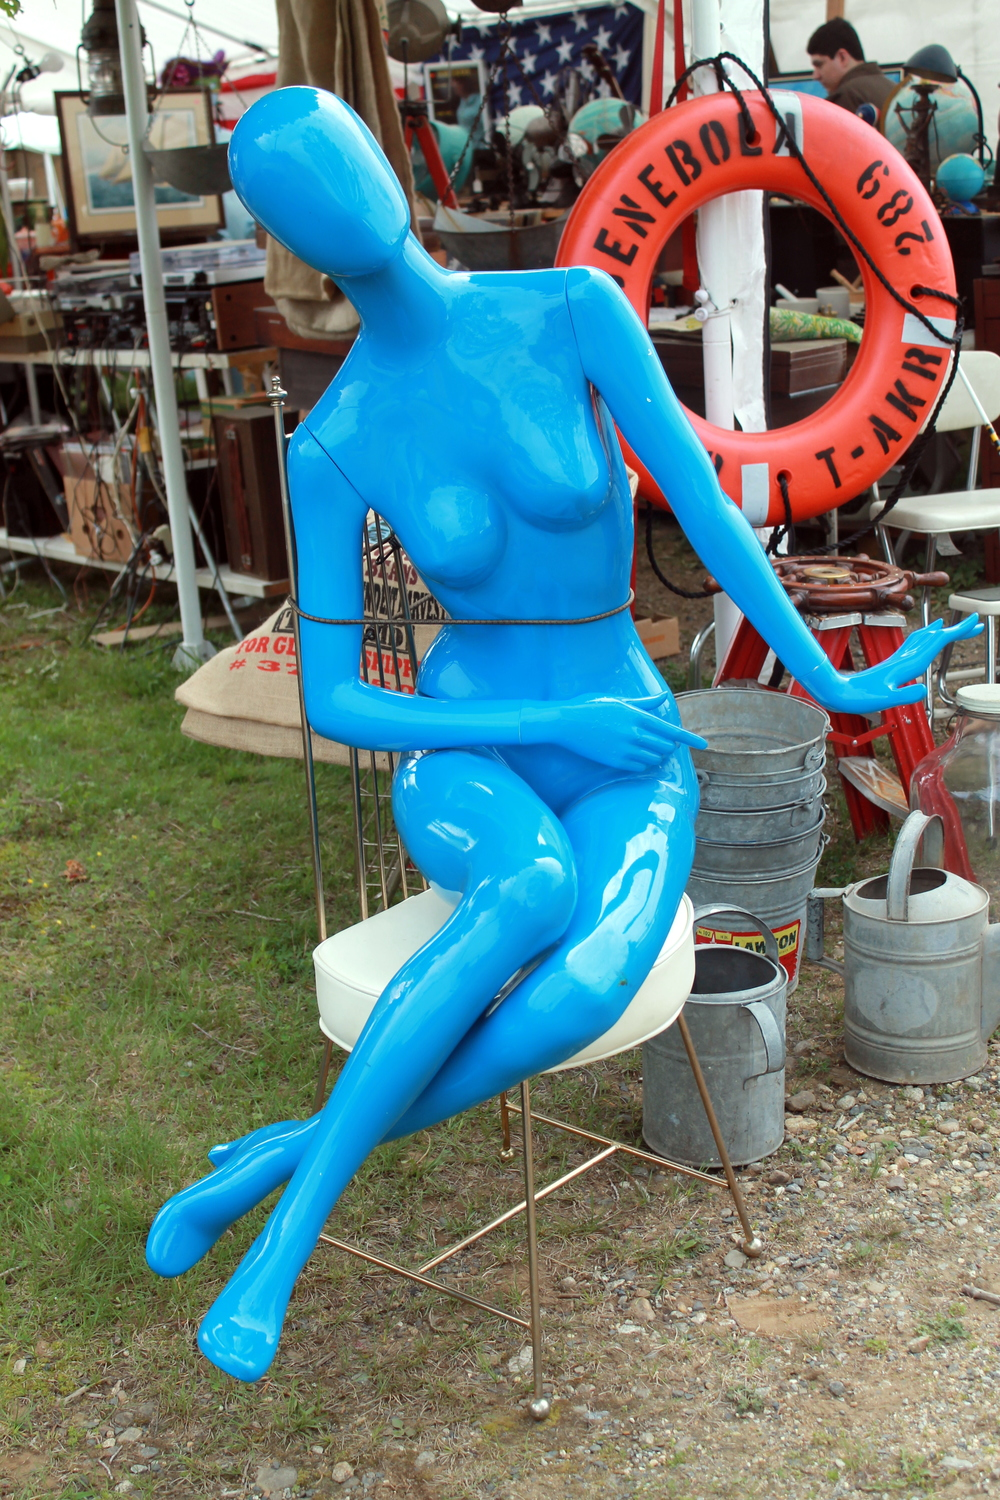 The odd and whimsical finds at Brimfield